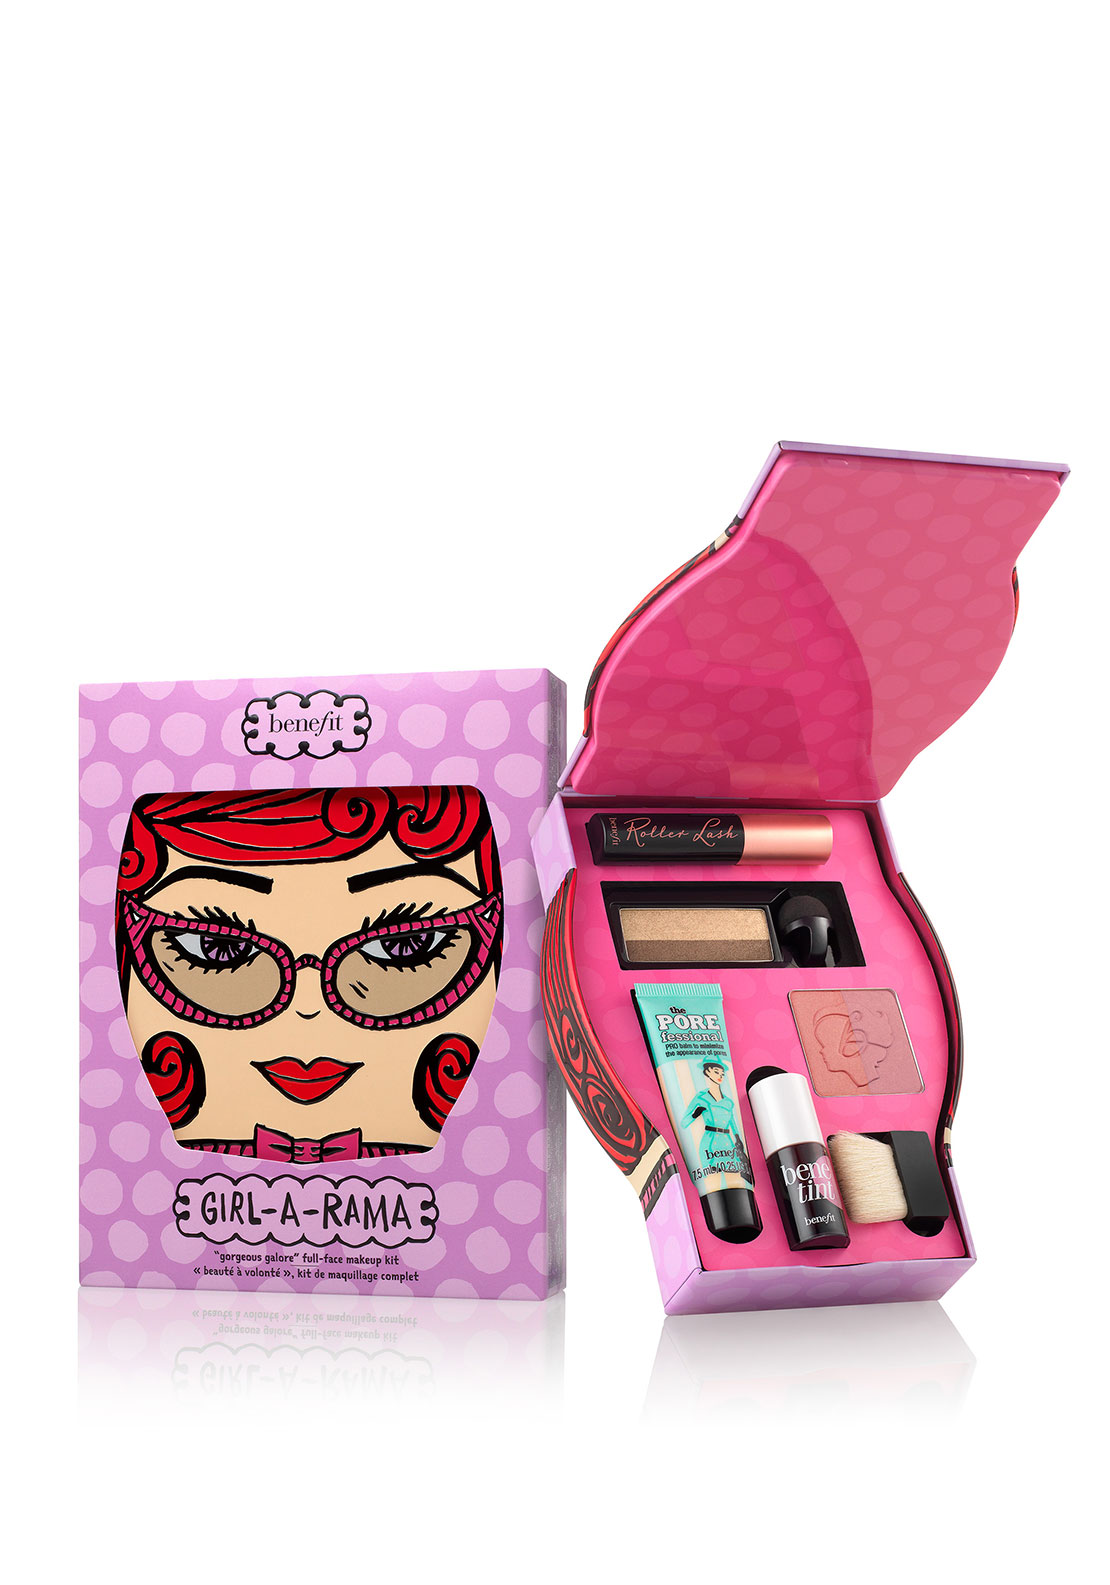 Benefit 'Girl-A-Rama' Gift Set